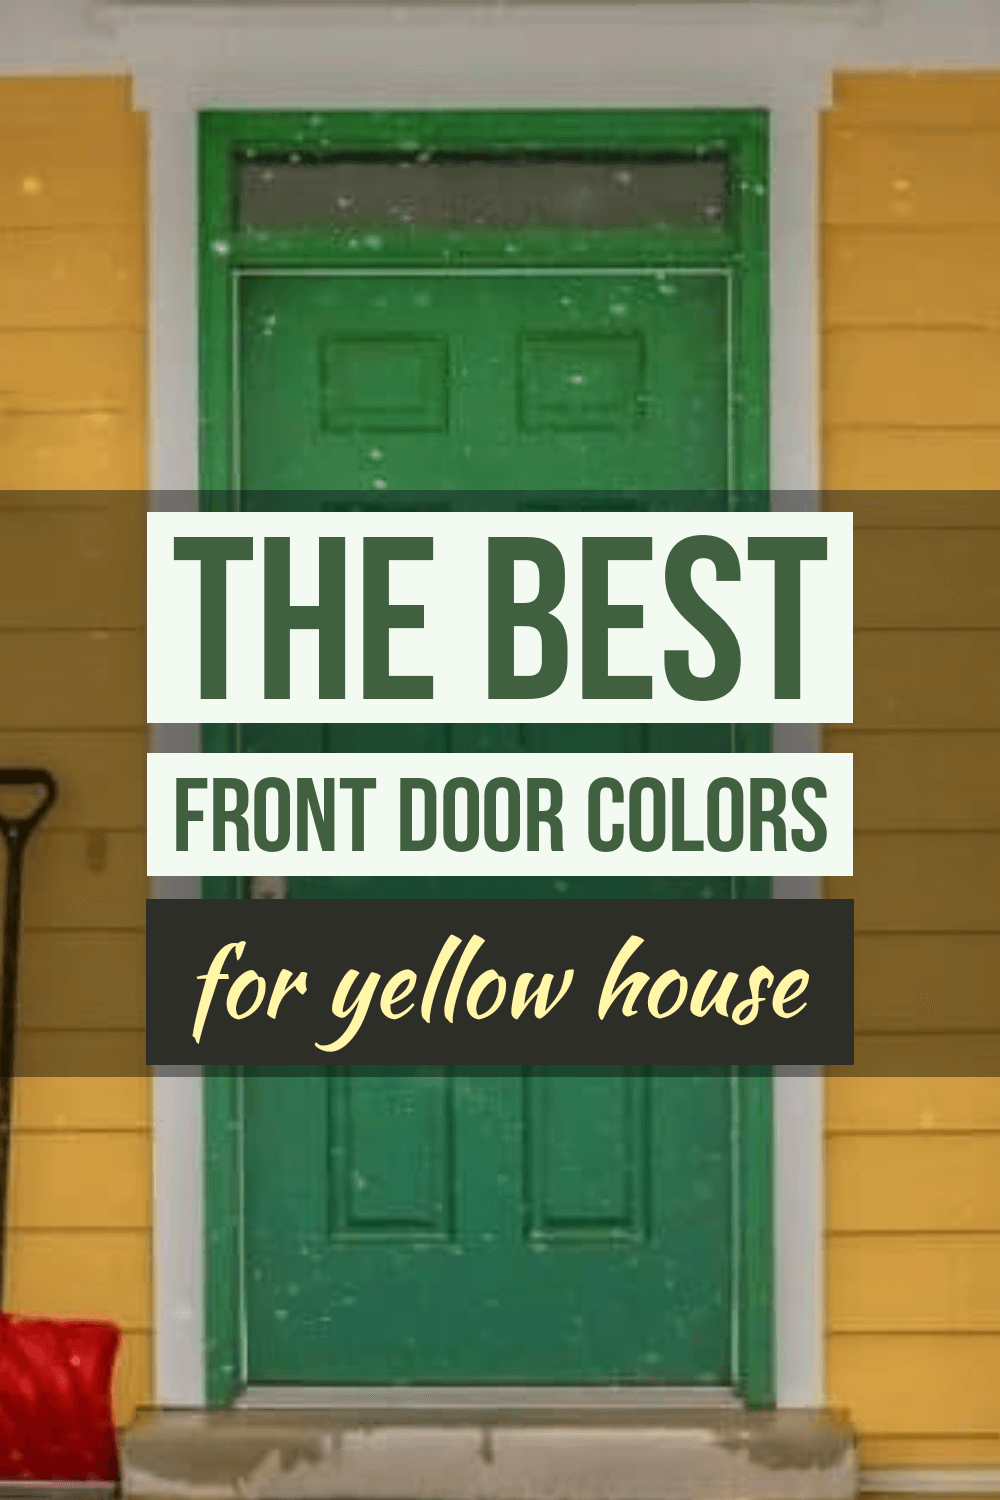 The best front door colors for yellow house